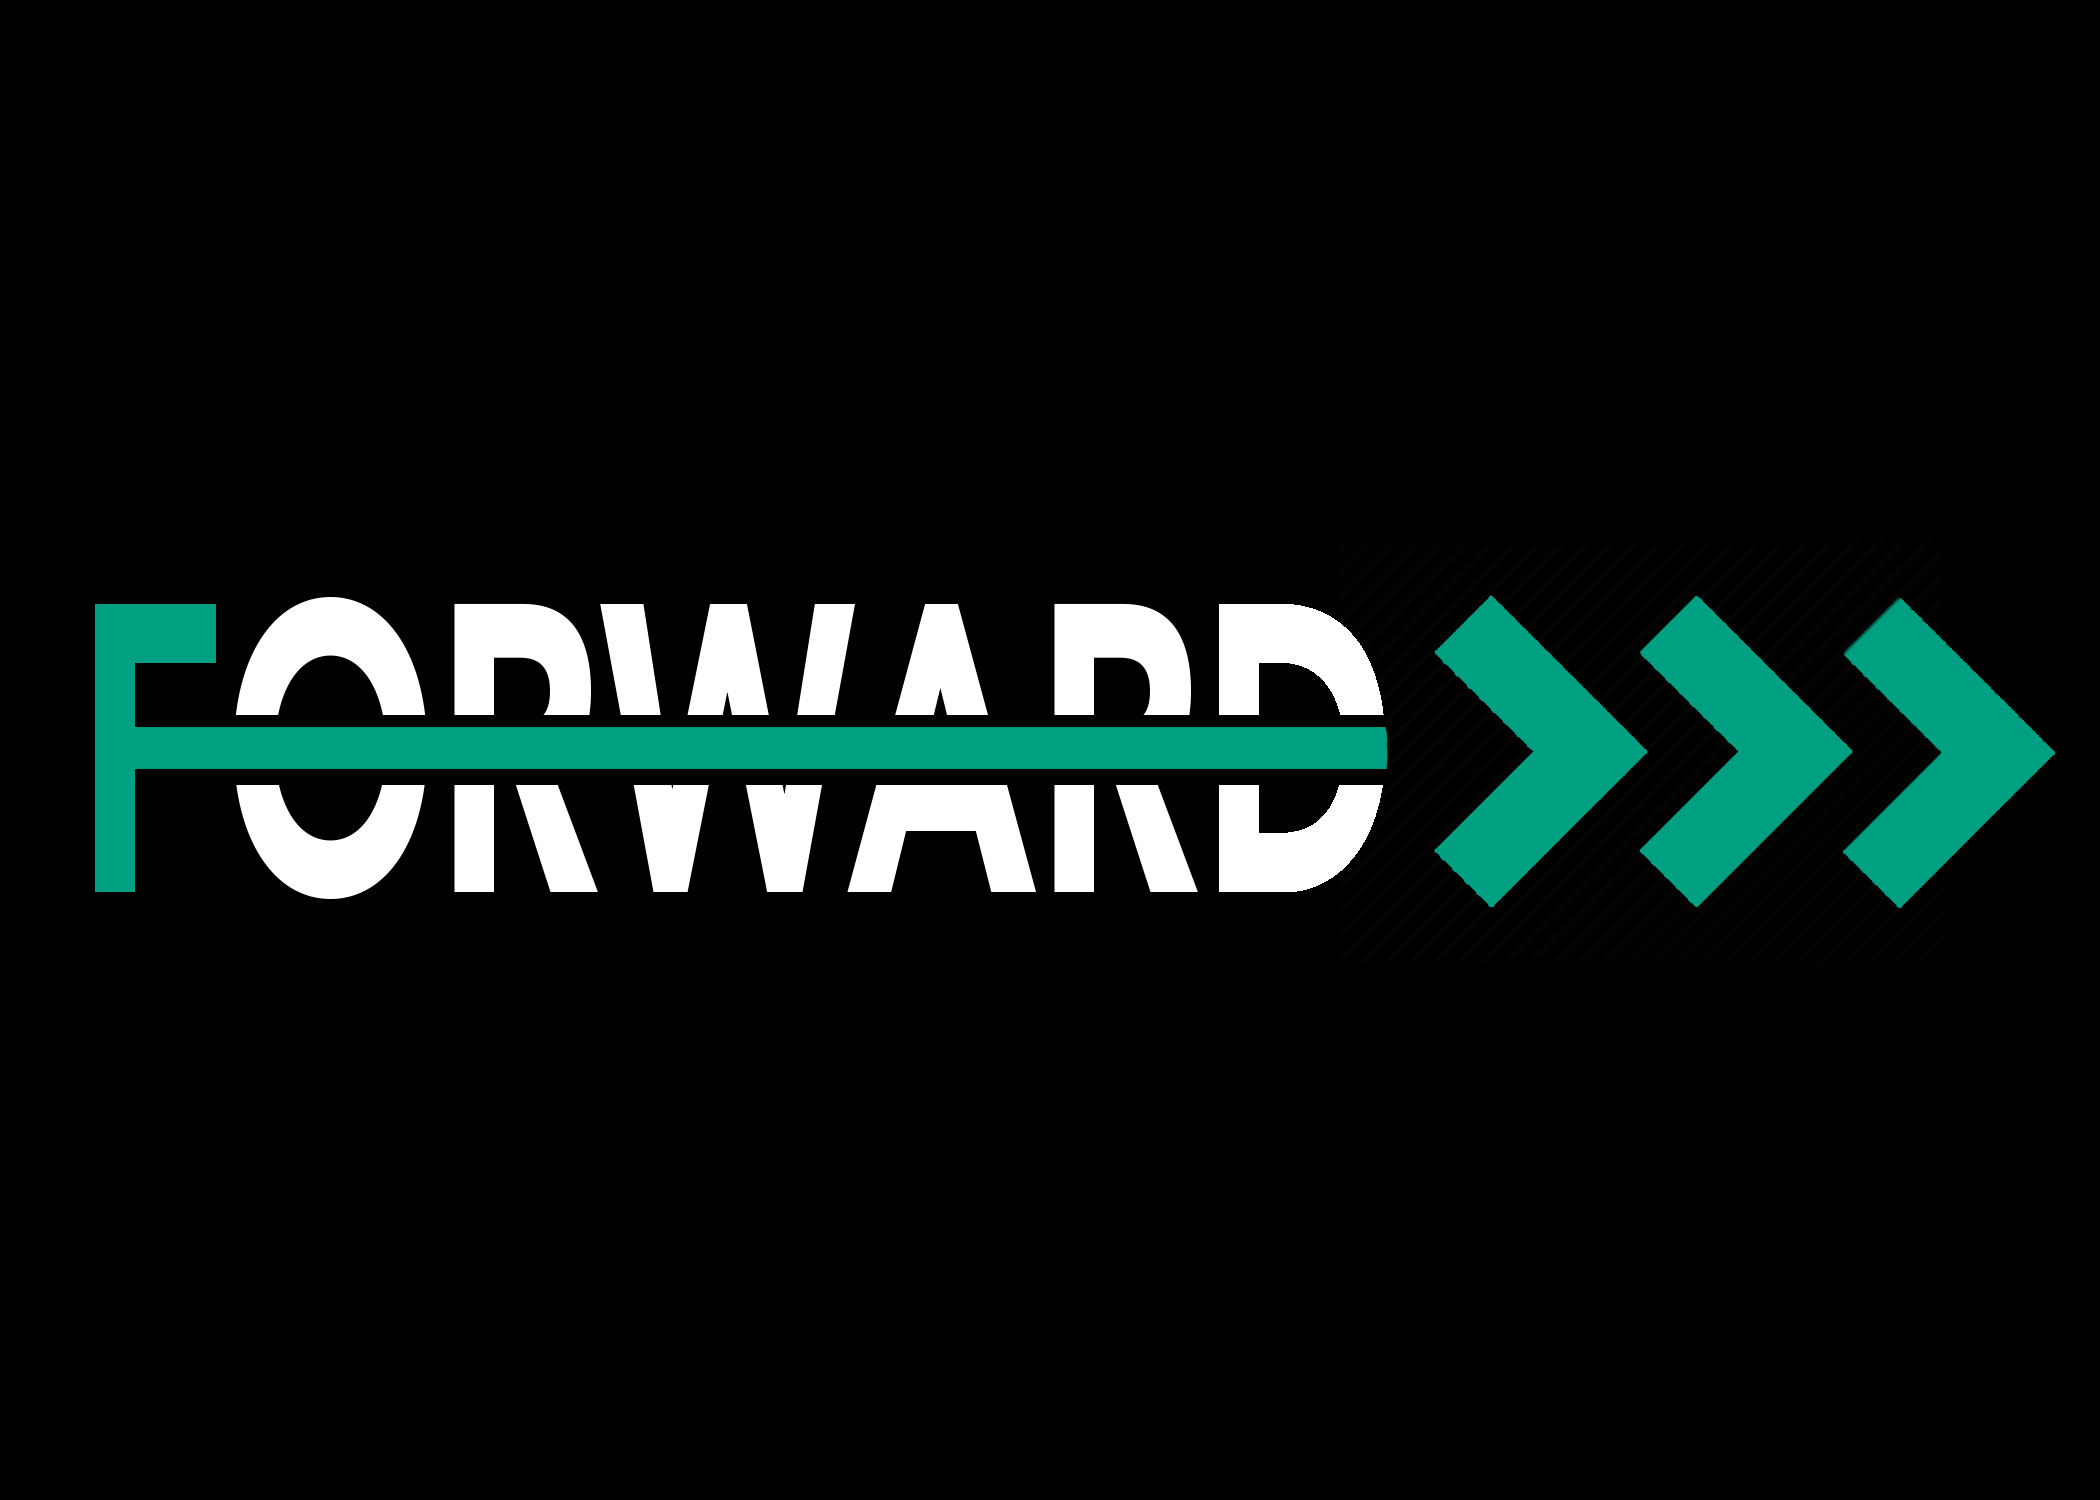 Forward | 5.19.19 - Don't Let Others Define YouPhillip Martin